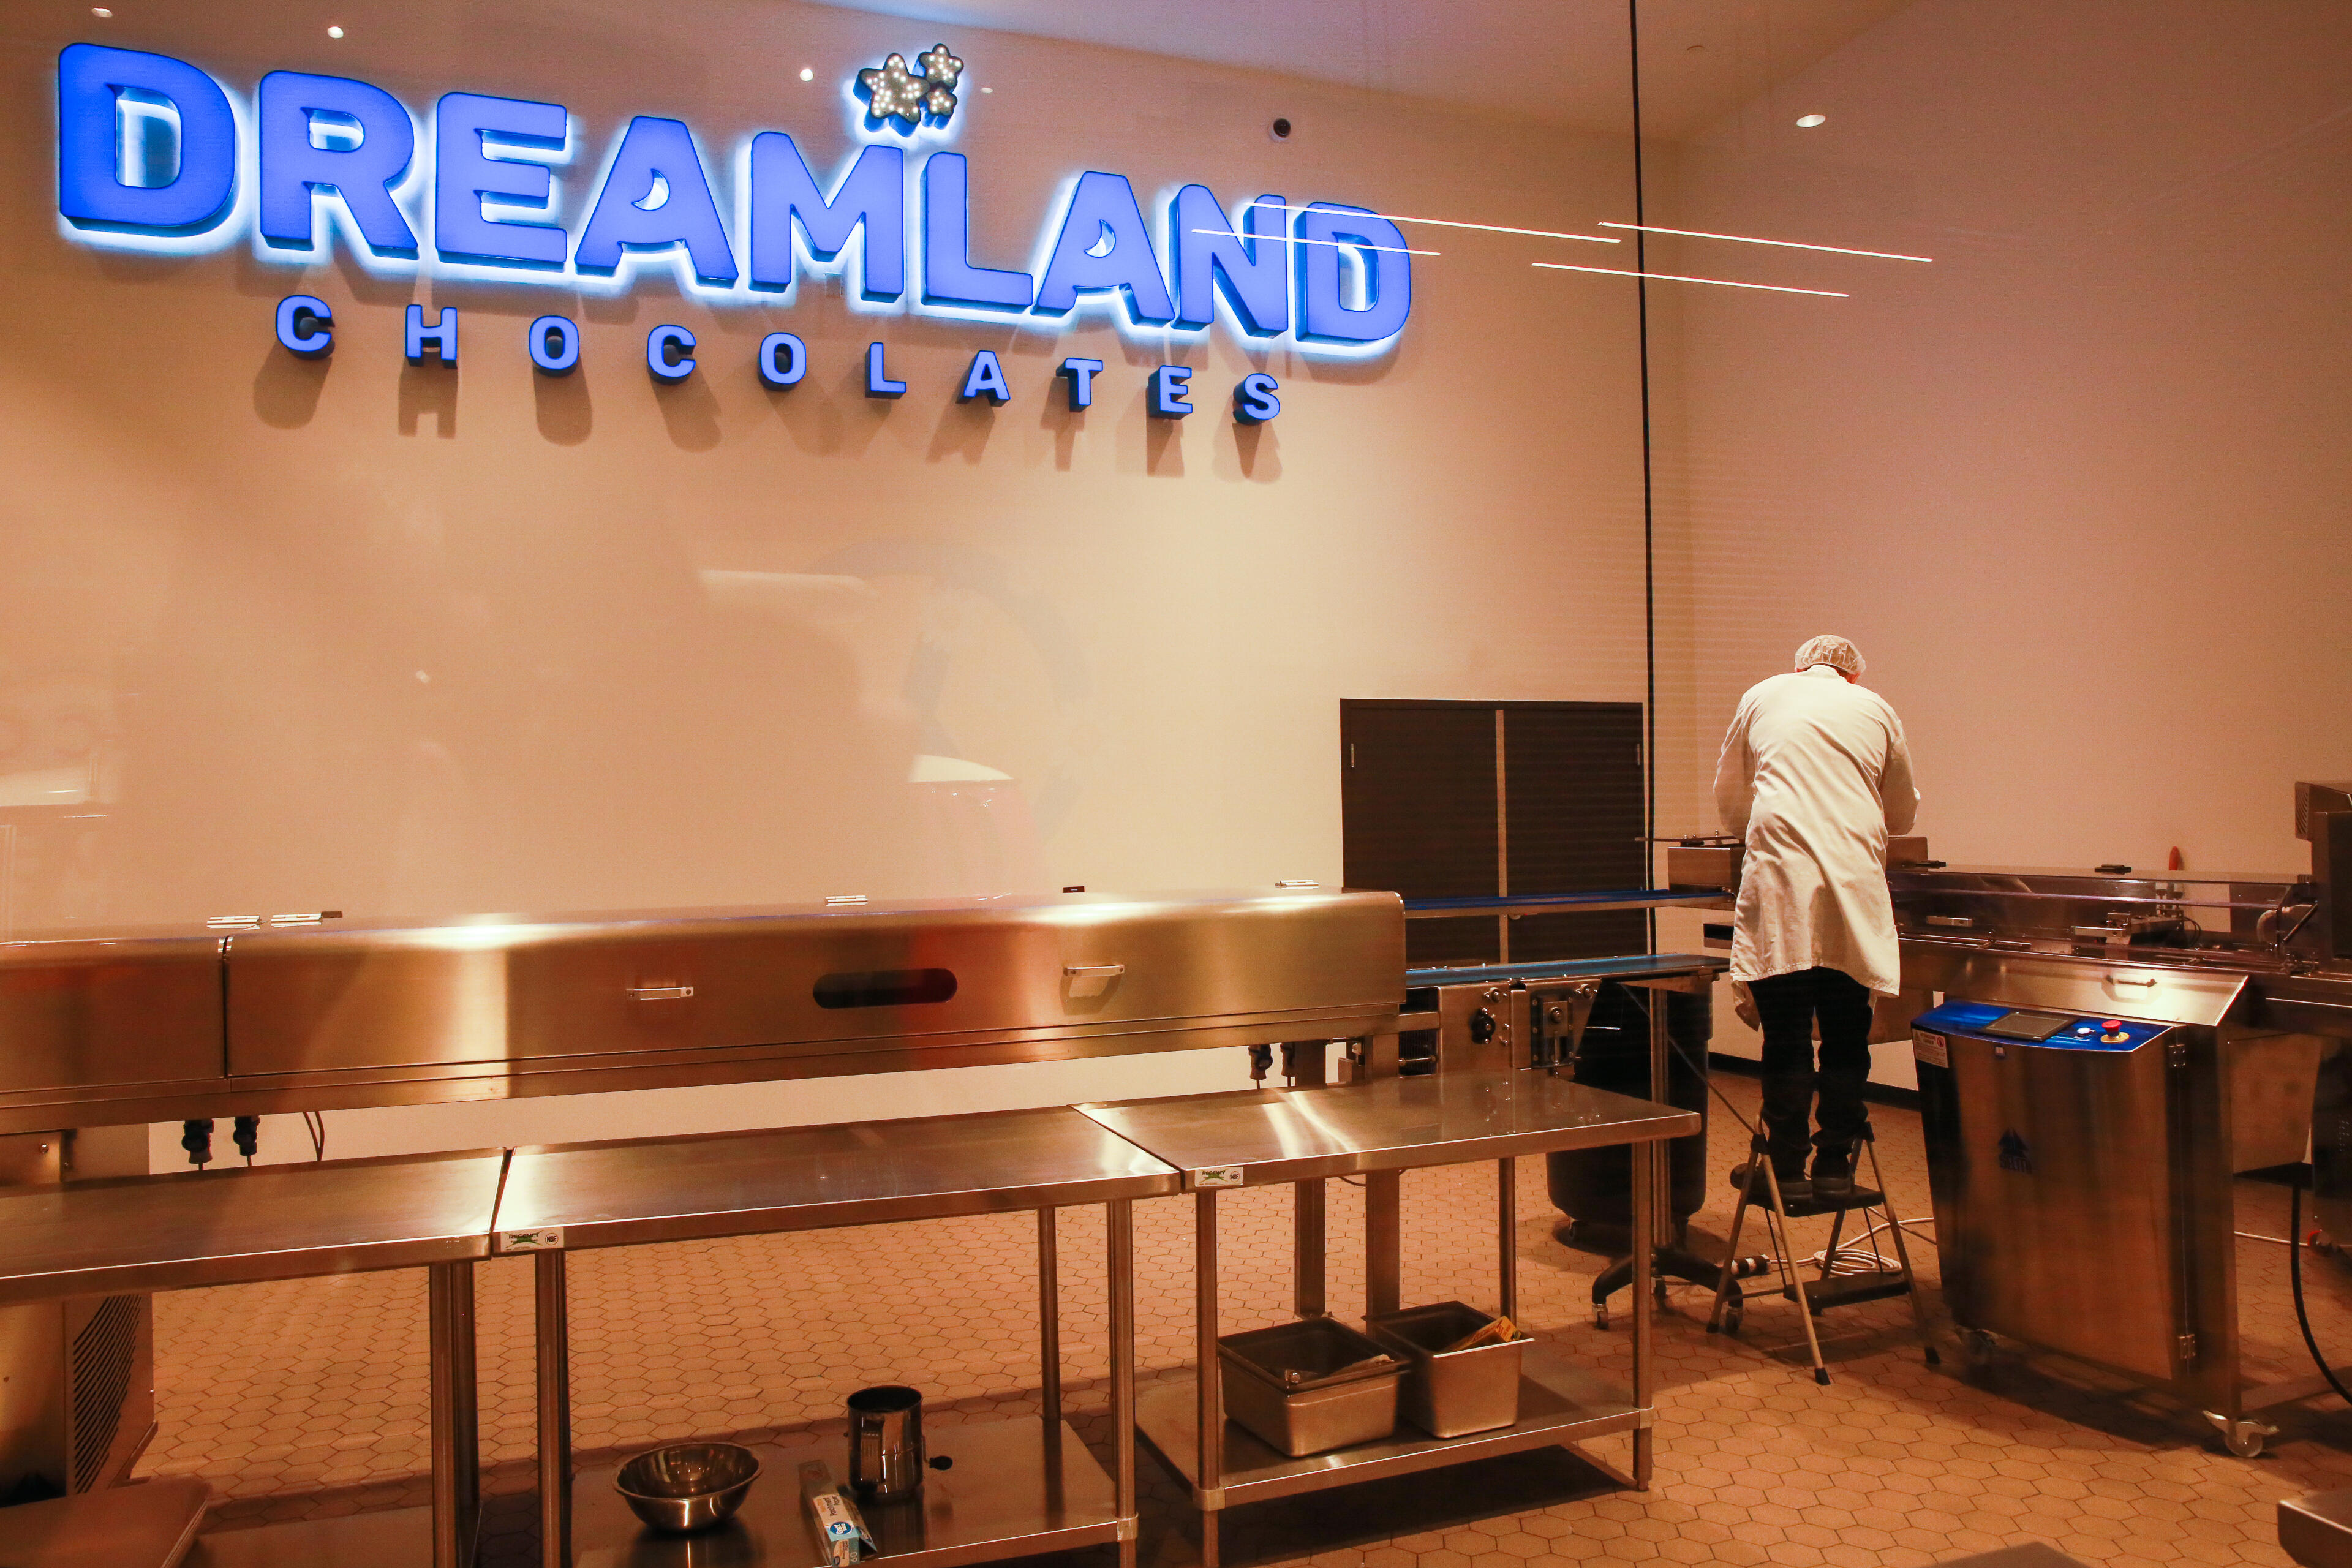 """When the Dreamland brand sign is blinking, that means chocolates are coming out on the conveyor belt. Reminds me of Krispy Kreme's """"Hot Fresh"""" signs!"""